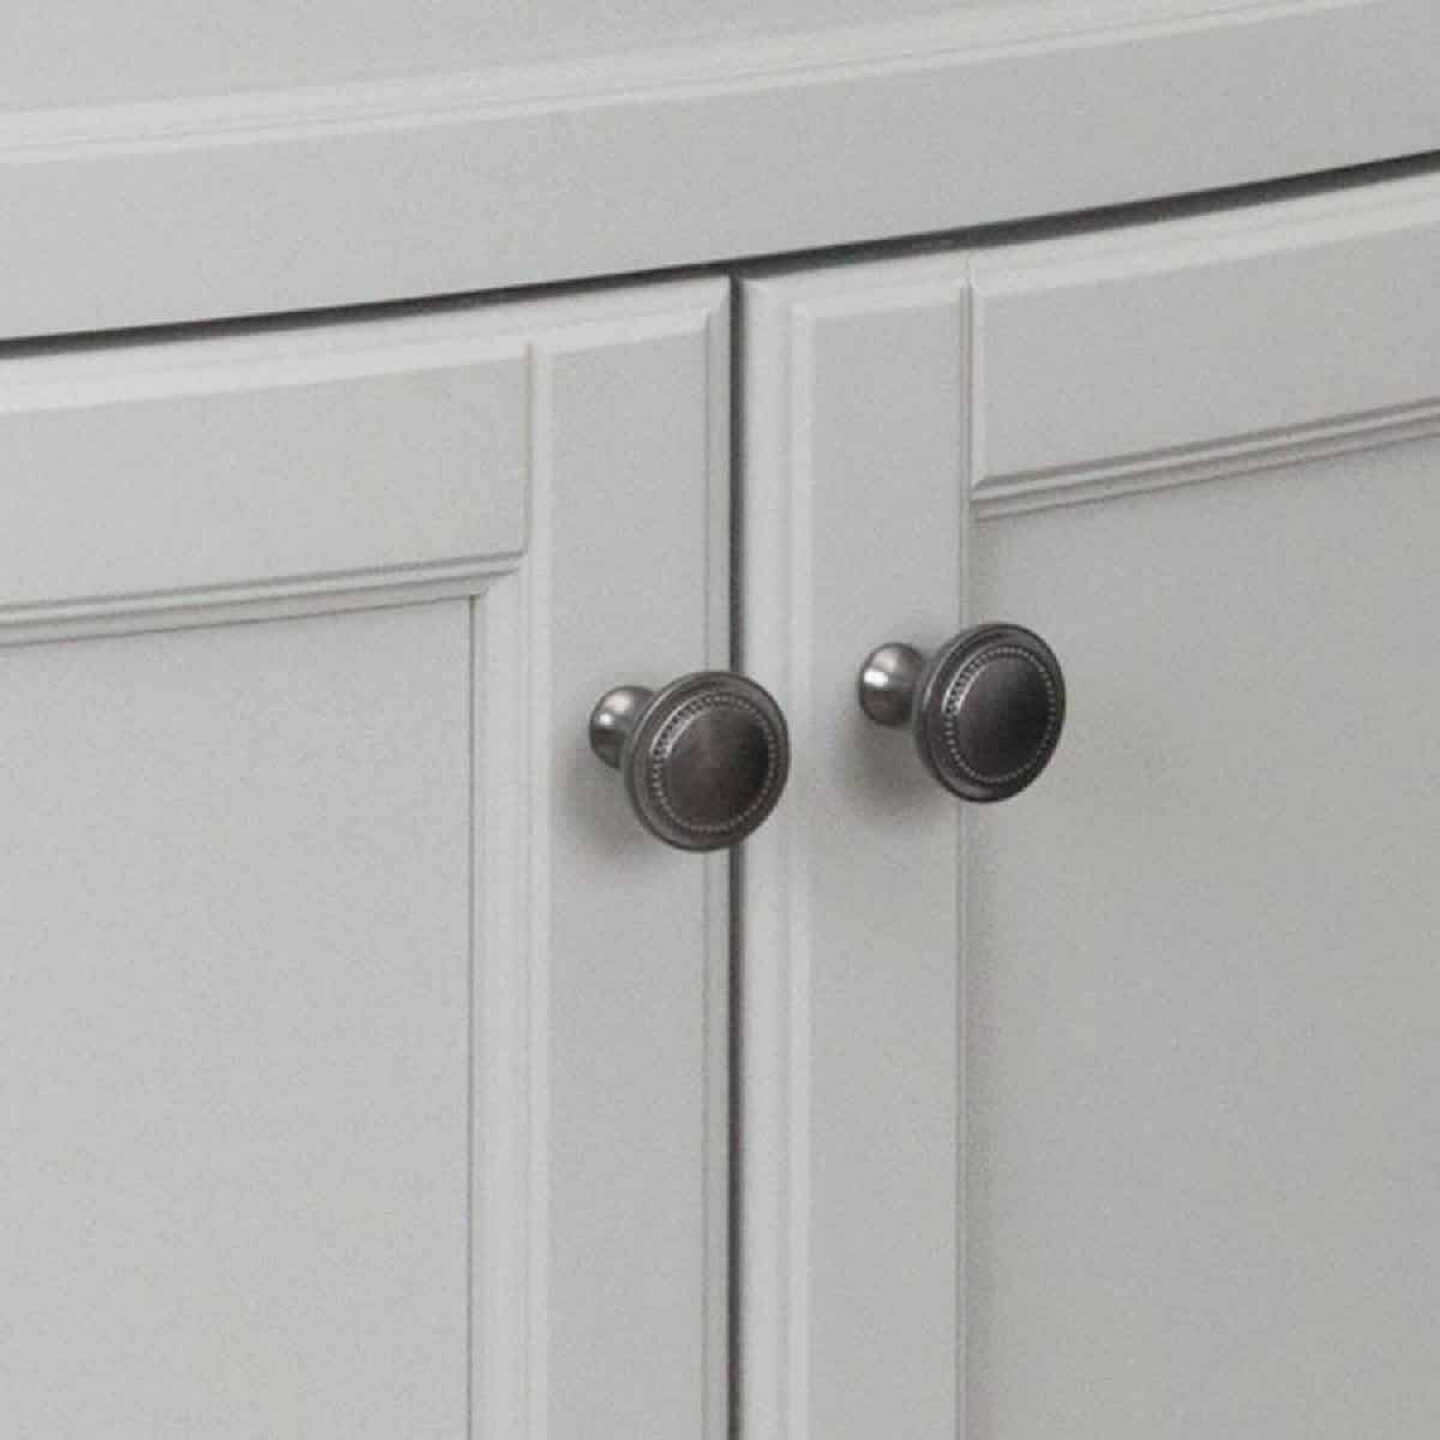 Continental Cabinets Duval Gray 30-1/2 In. W x 34-3/8 In. H x 18-3/4 In. D Vanity with Arctic White Top Image 5